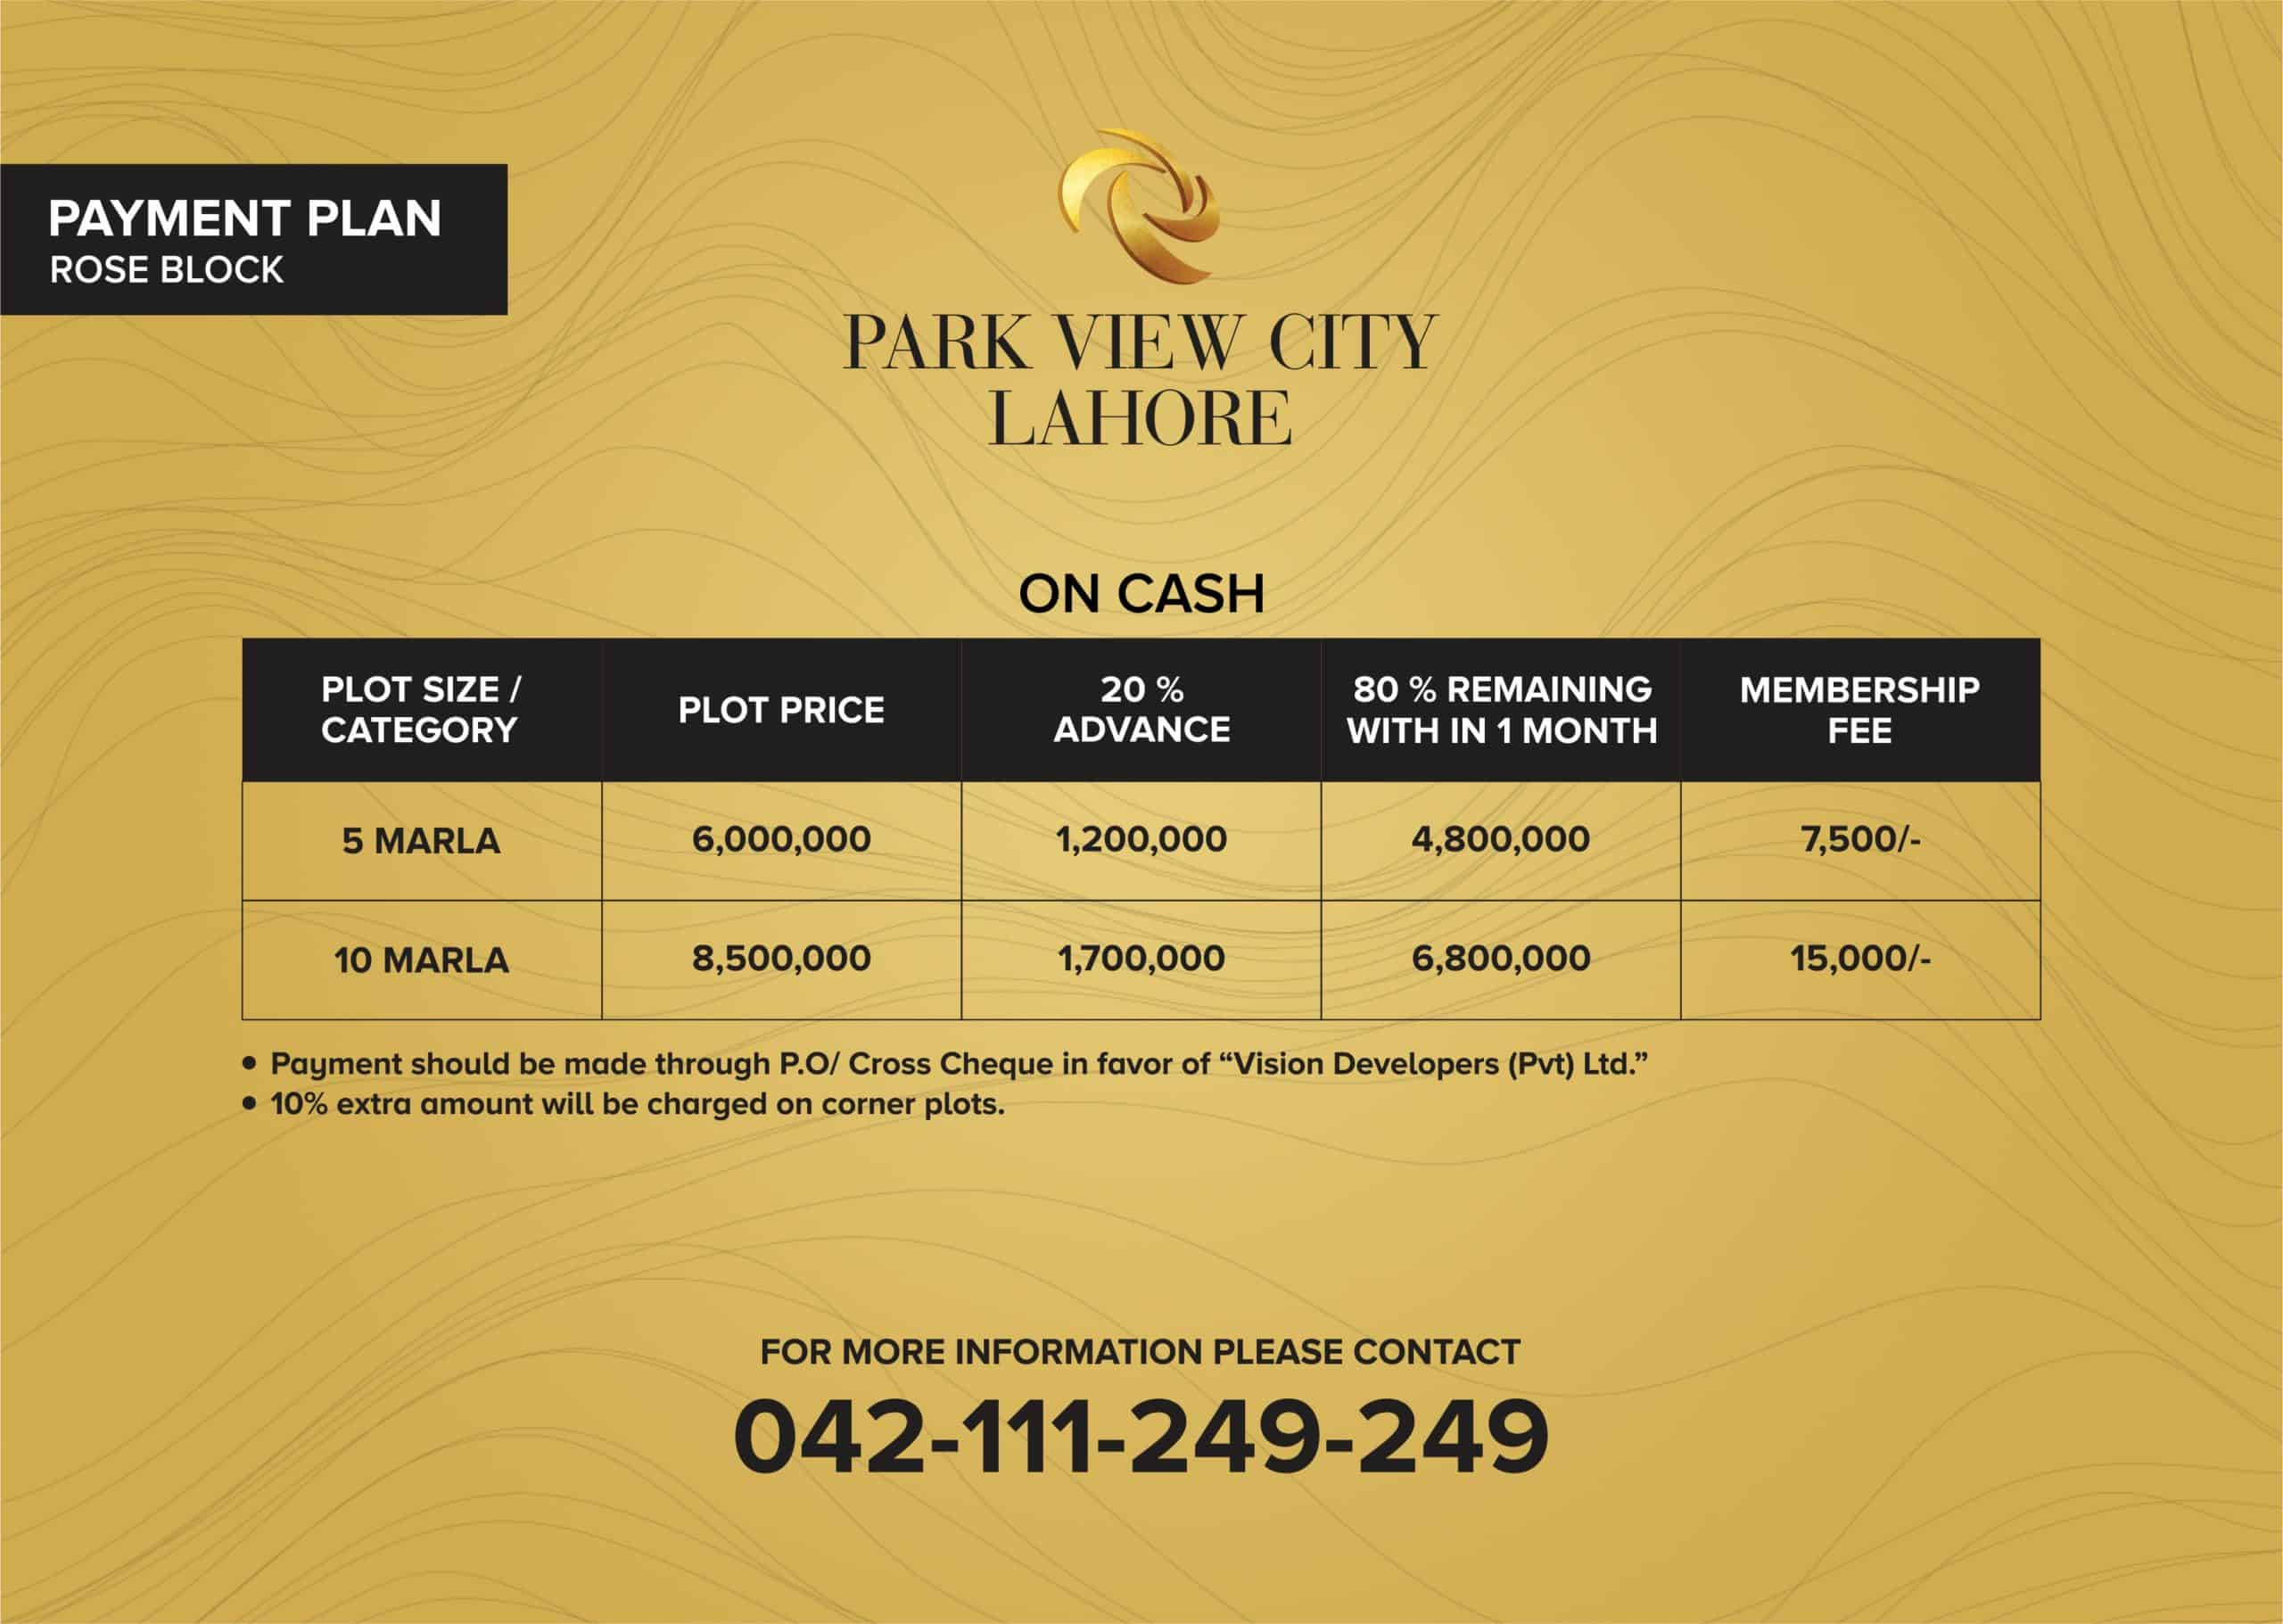 PAYMENT-PLAN-PVCL-ROSE-BLOCK-scaled-1